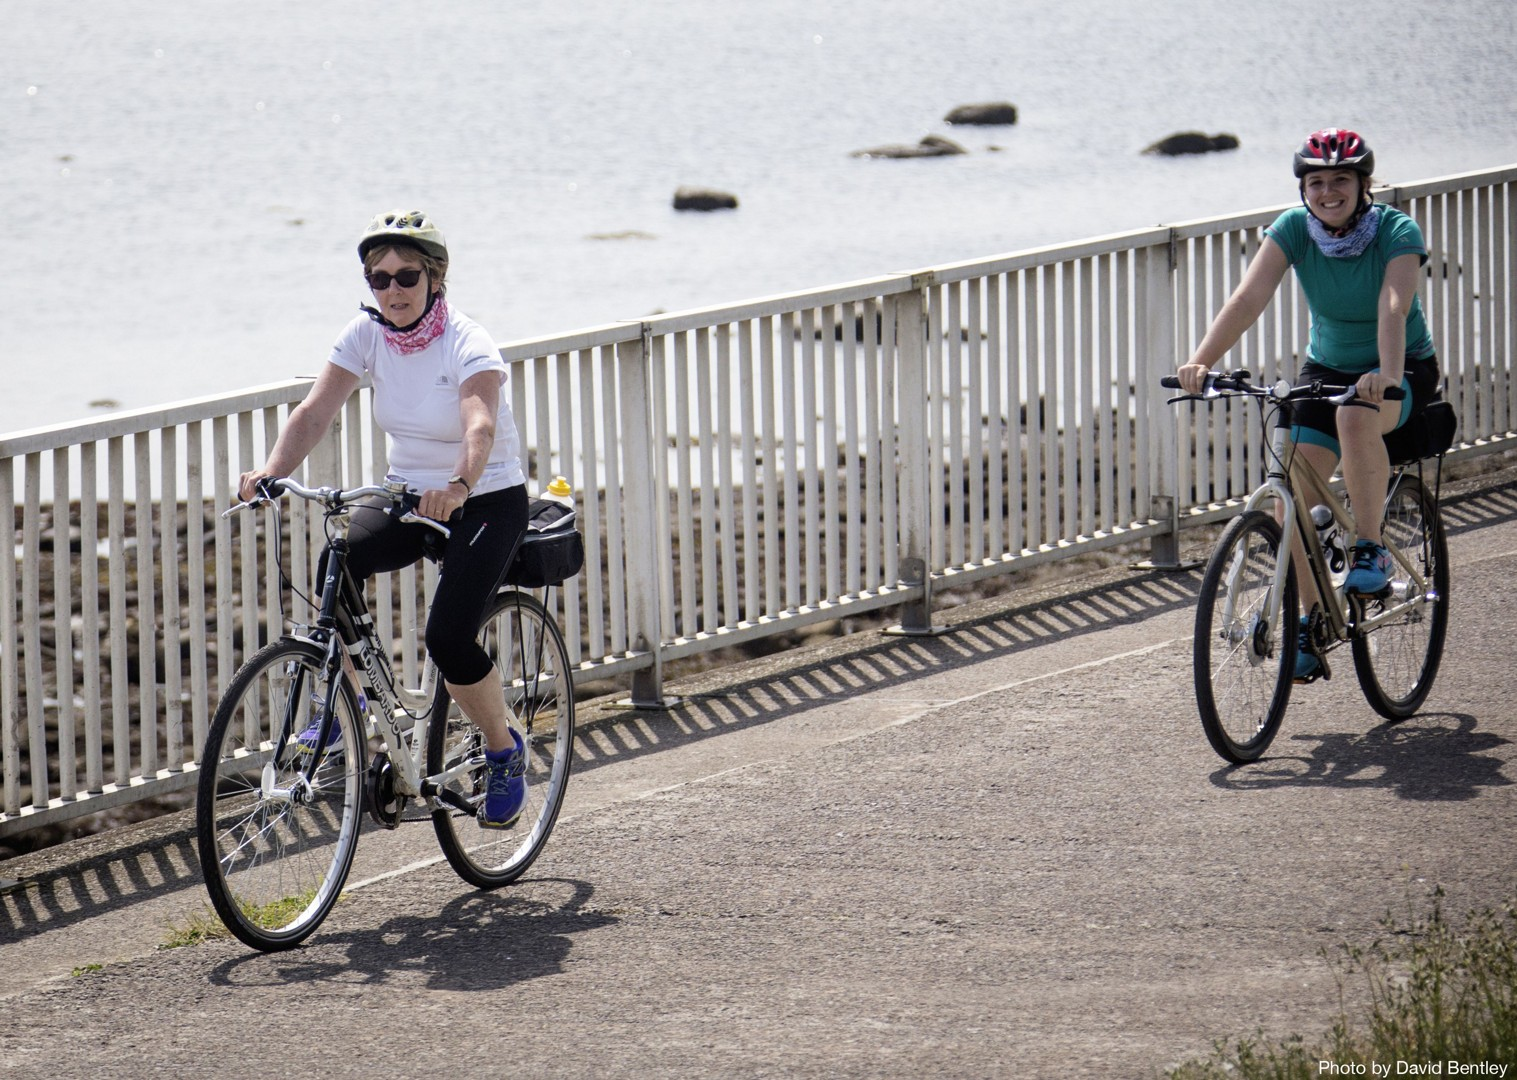 Self-Guided-Leisure-Cycling-Holiday-Hadrians-Cycleway-UK-cycle-Tynemouth.jpg - UK - Hadrian's Cycleway - 4 Days Cycling - Self-Guided Leisure Cycling Holiday - Leisure Cycling